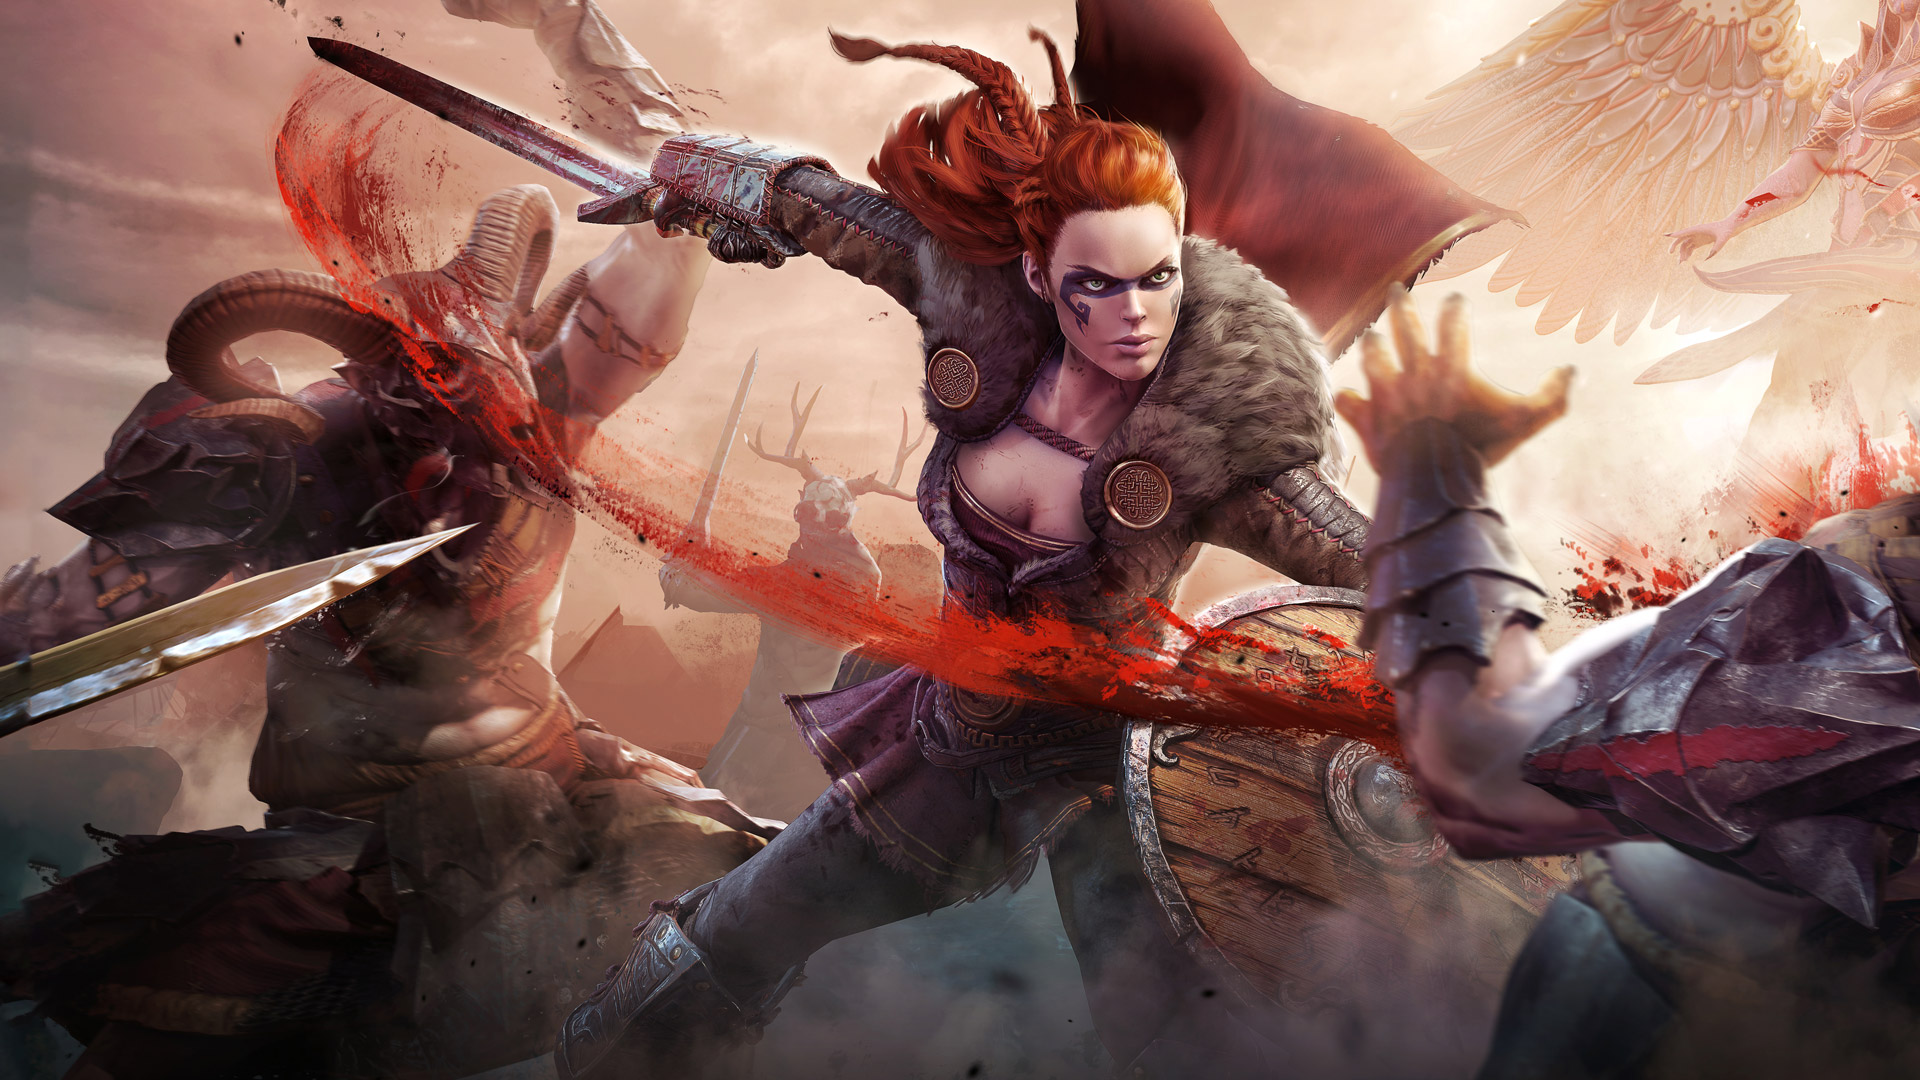 'Asgard's Wrath' Behind-the-scenes – Insights & Artwork from Sanzaru Games and Oculus Studios